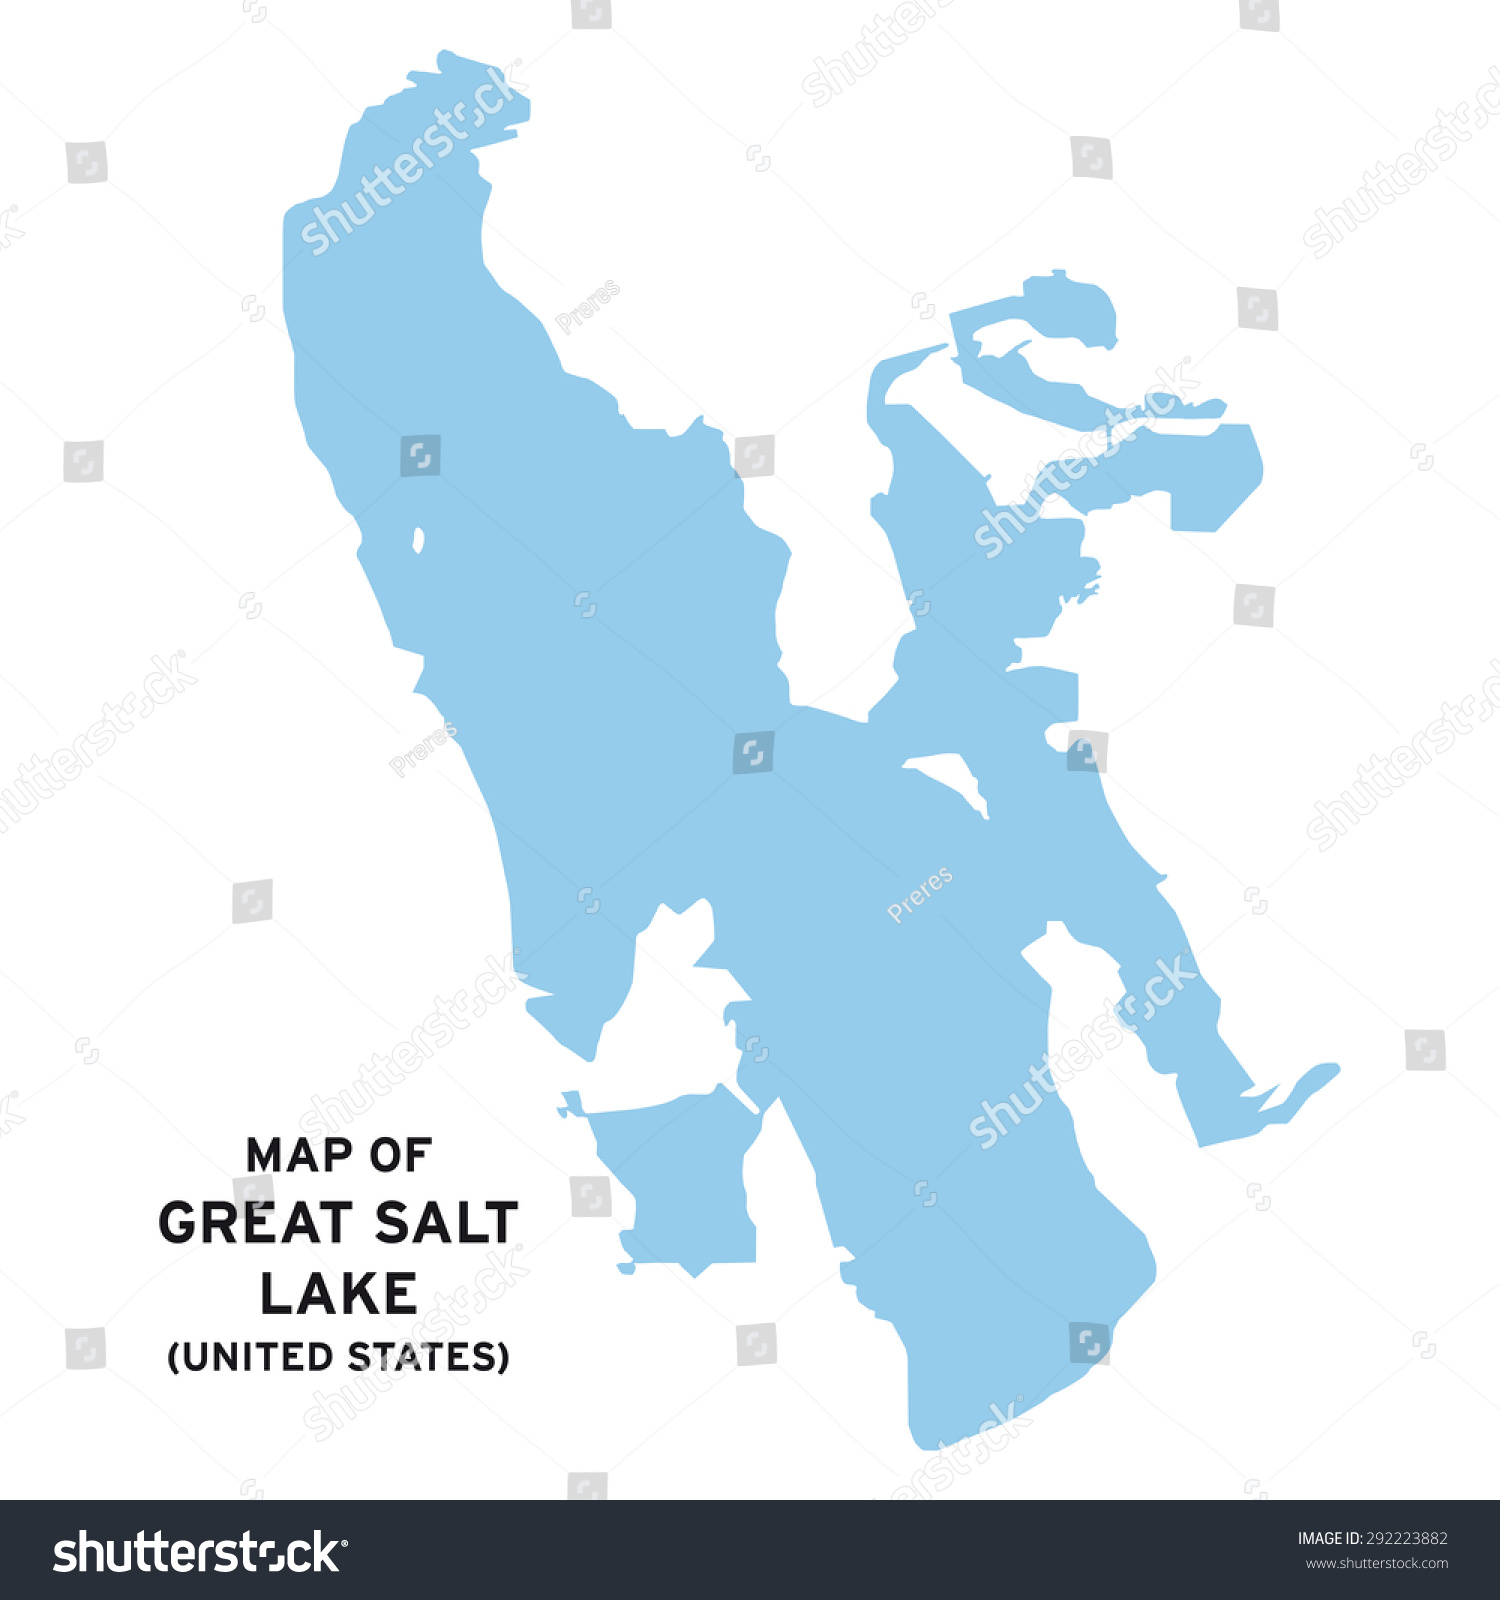 Great Salt Lake United States Map Stock Vector - Great salt lake on a us map